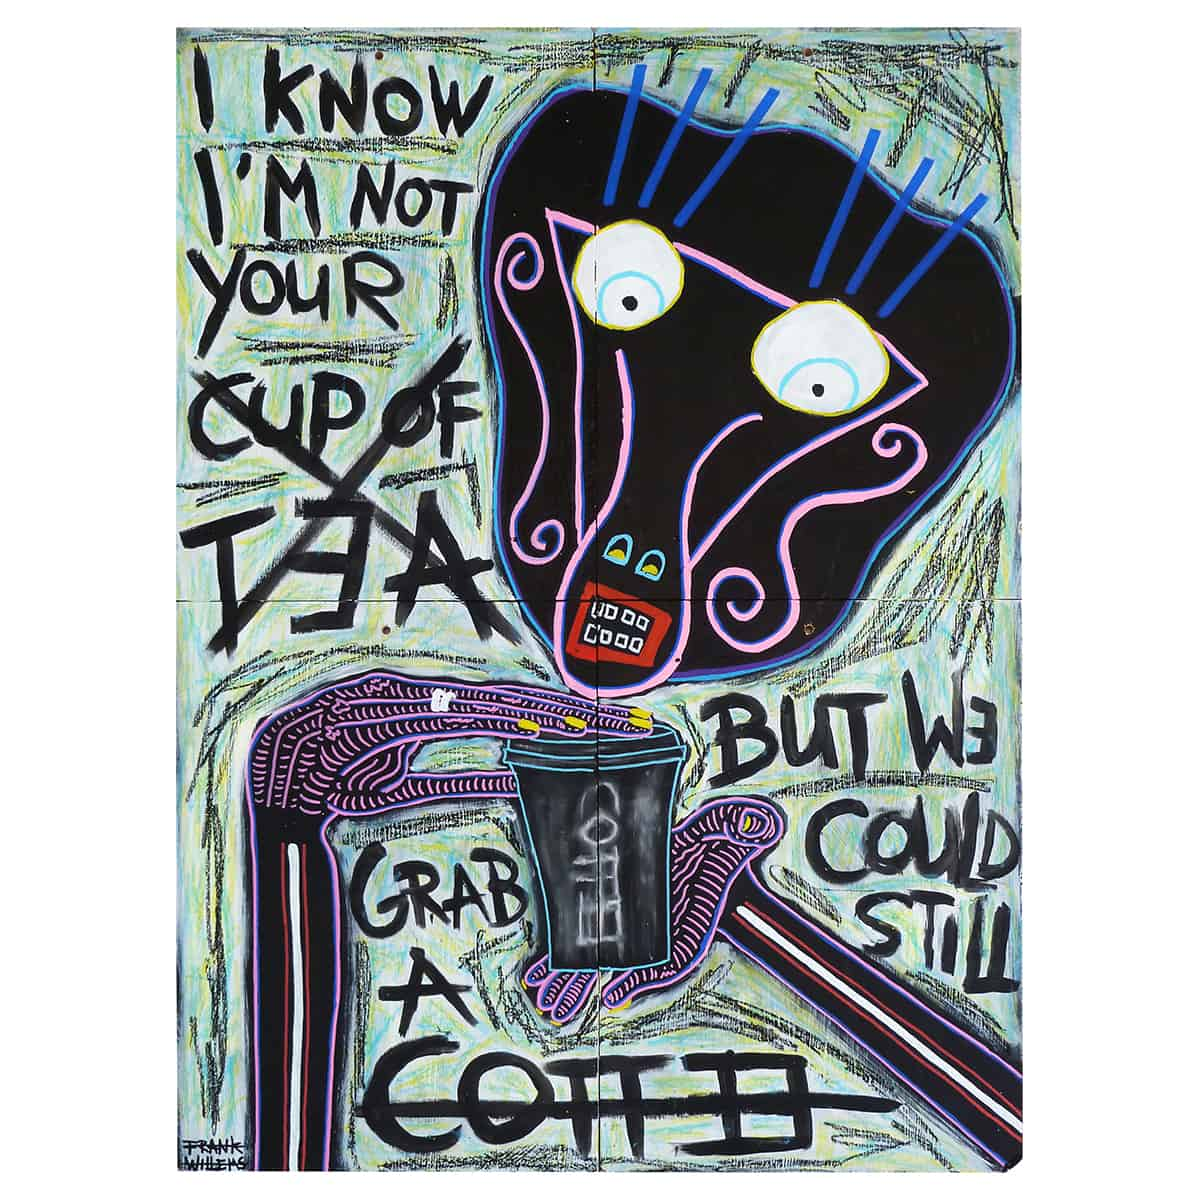 CUP OF TEA - Frank Willems